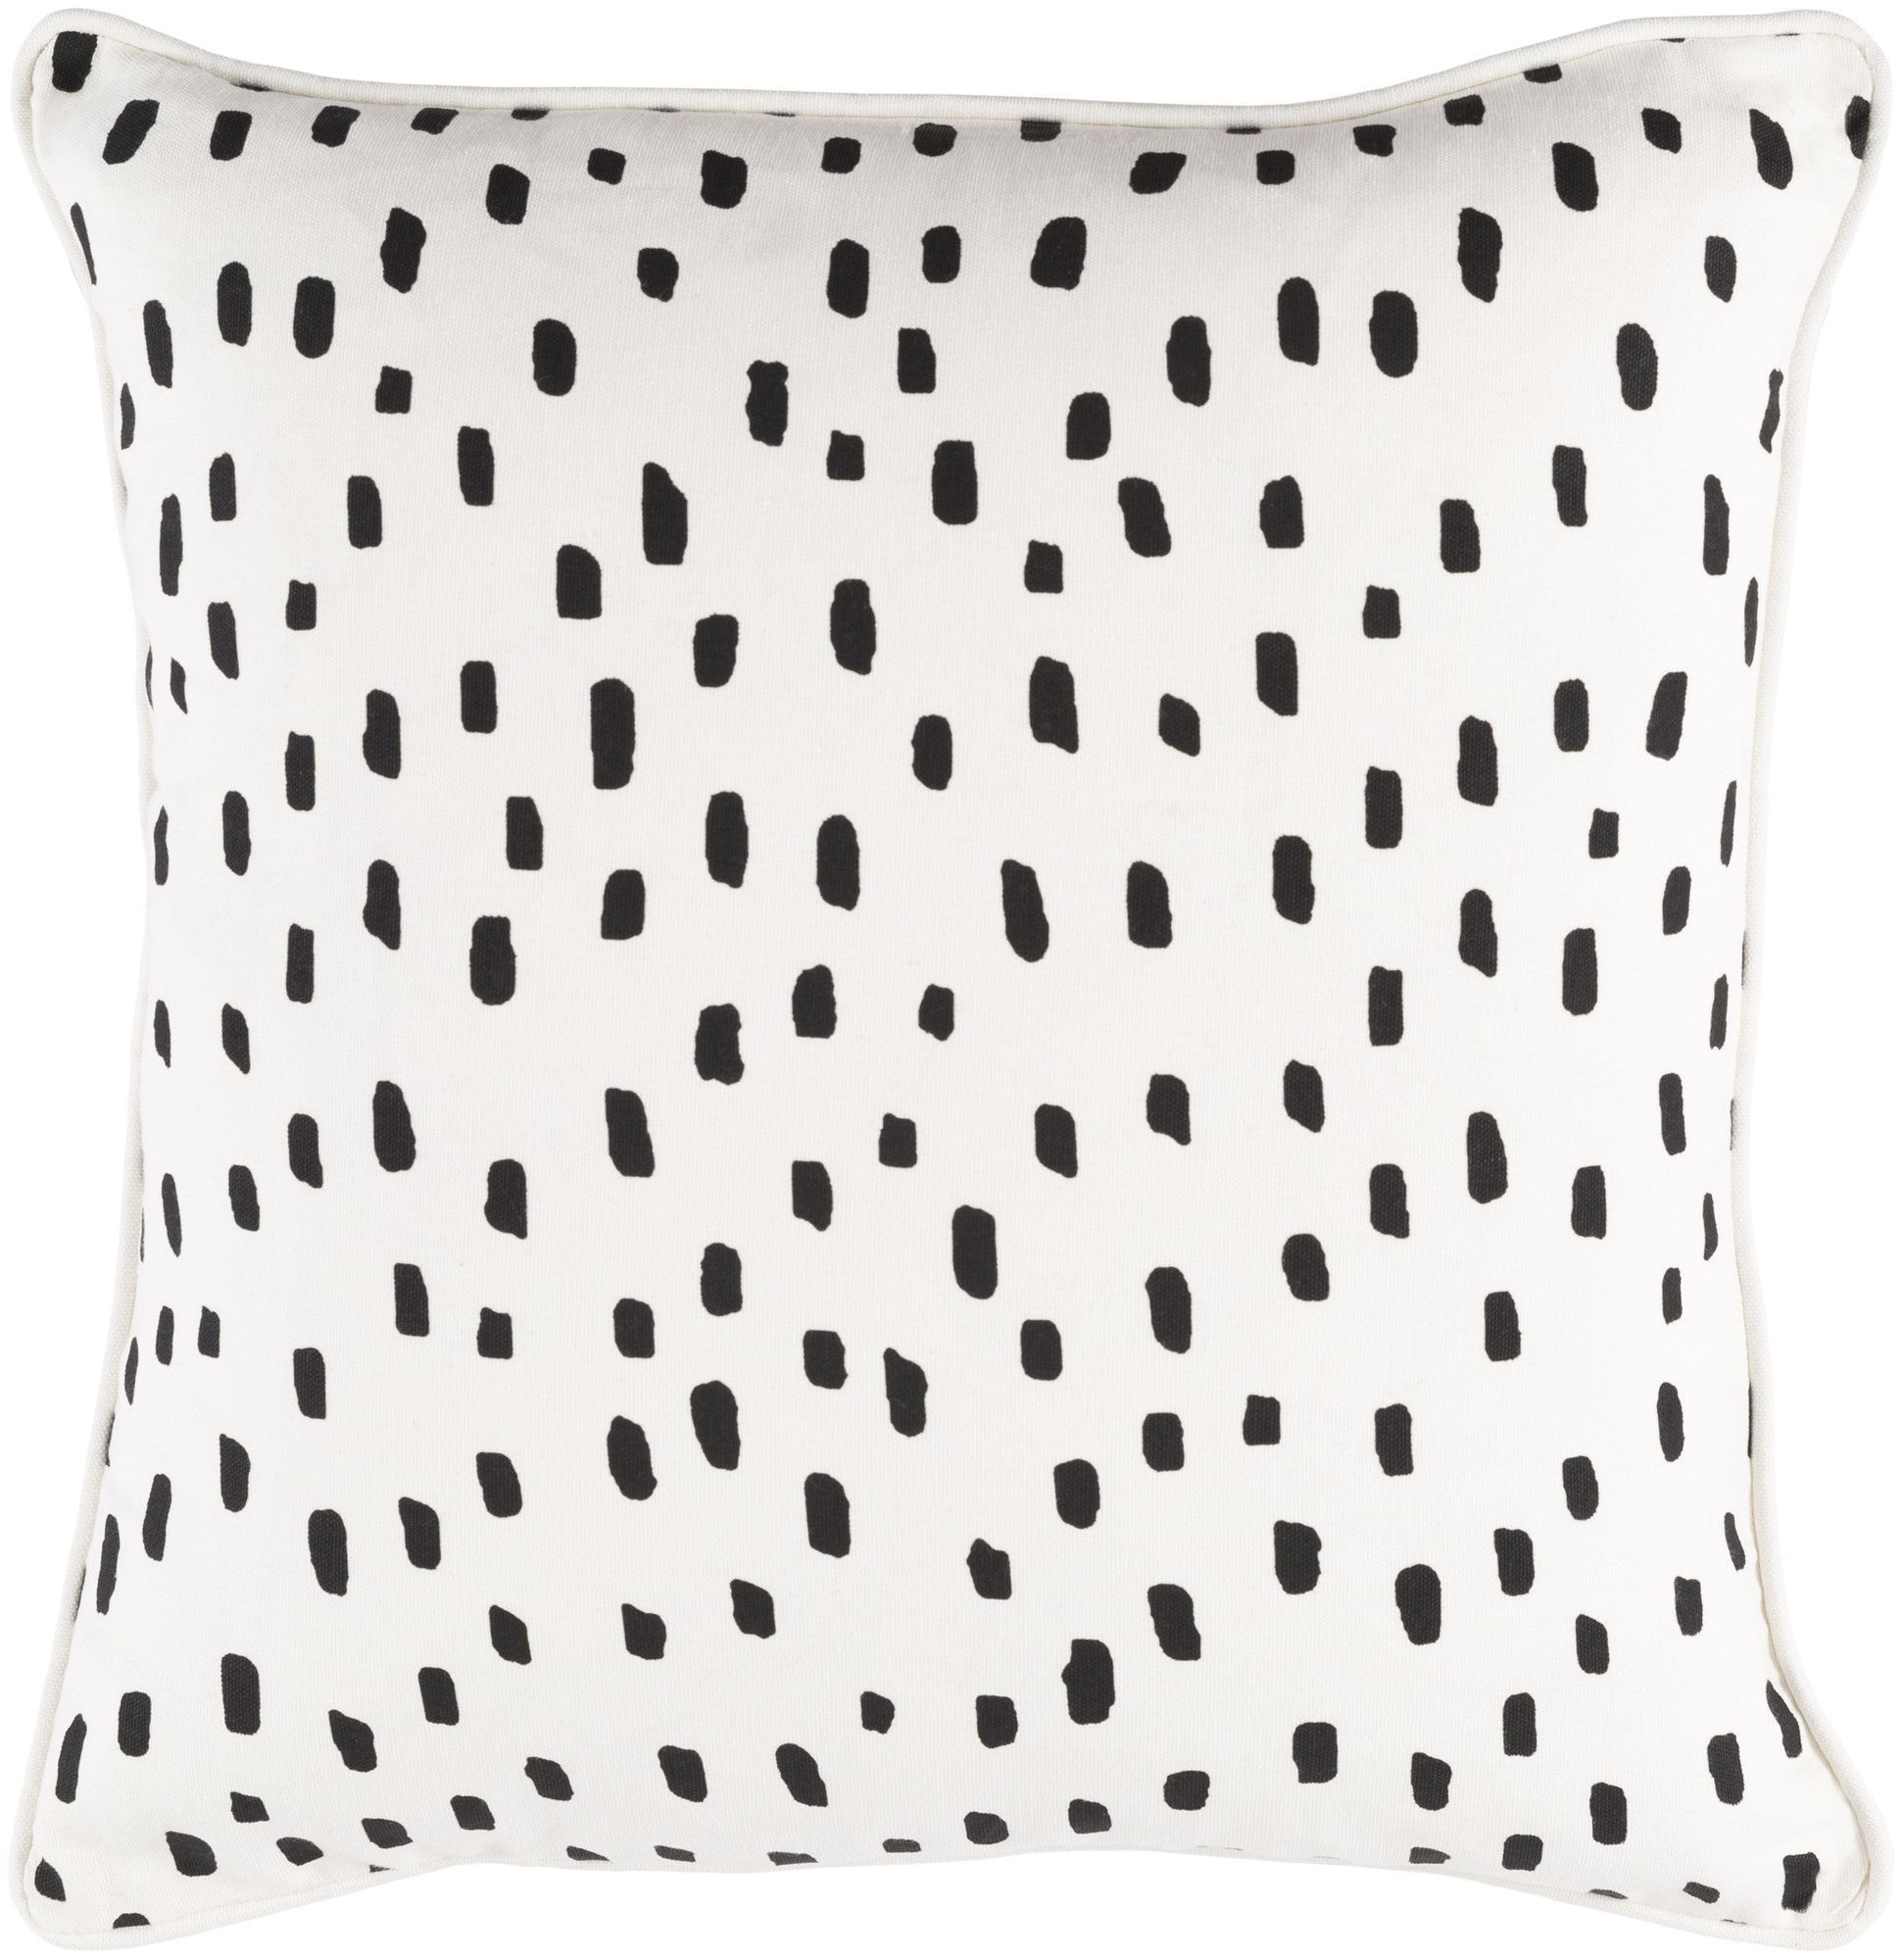 Glyph Dalmatian Dot Cotton Throw Pillow Cover